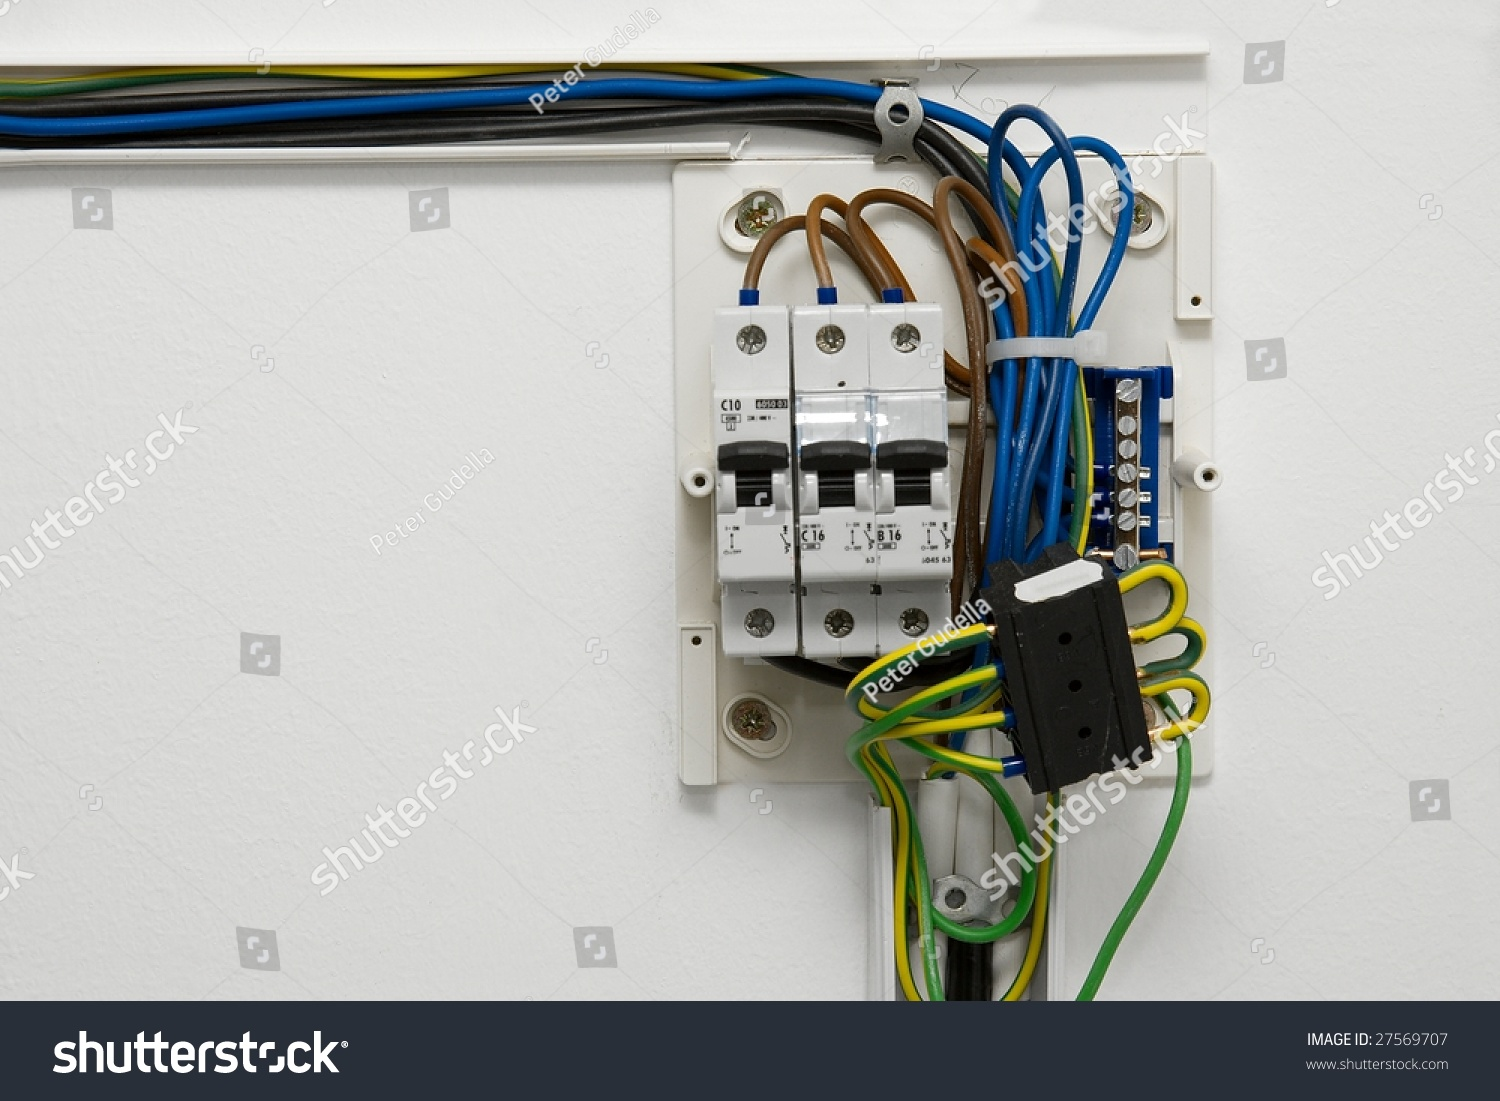 house wiring amps the wiring diagram house wiring amps vidim wiring diagram house wiring